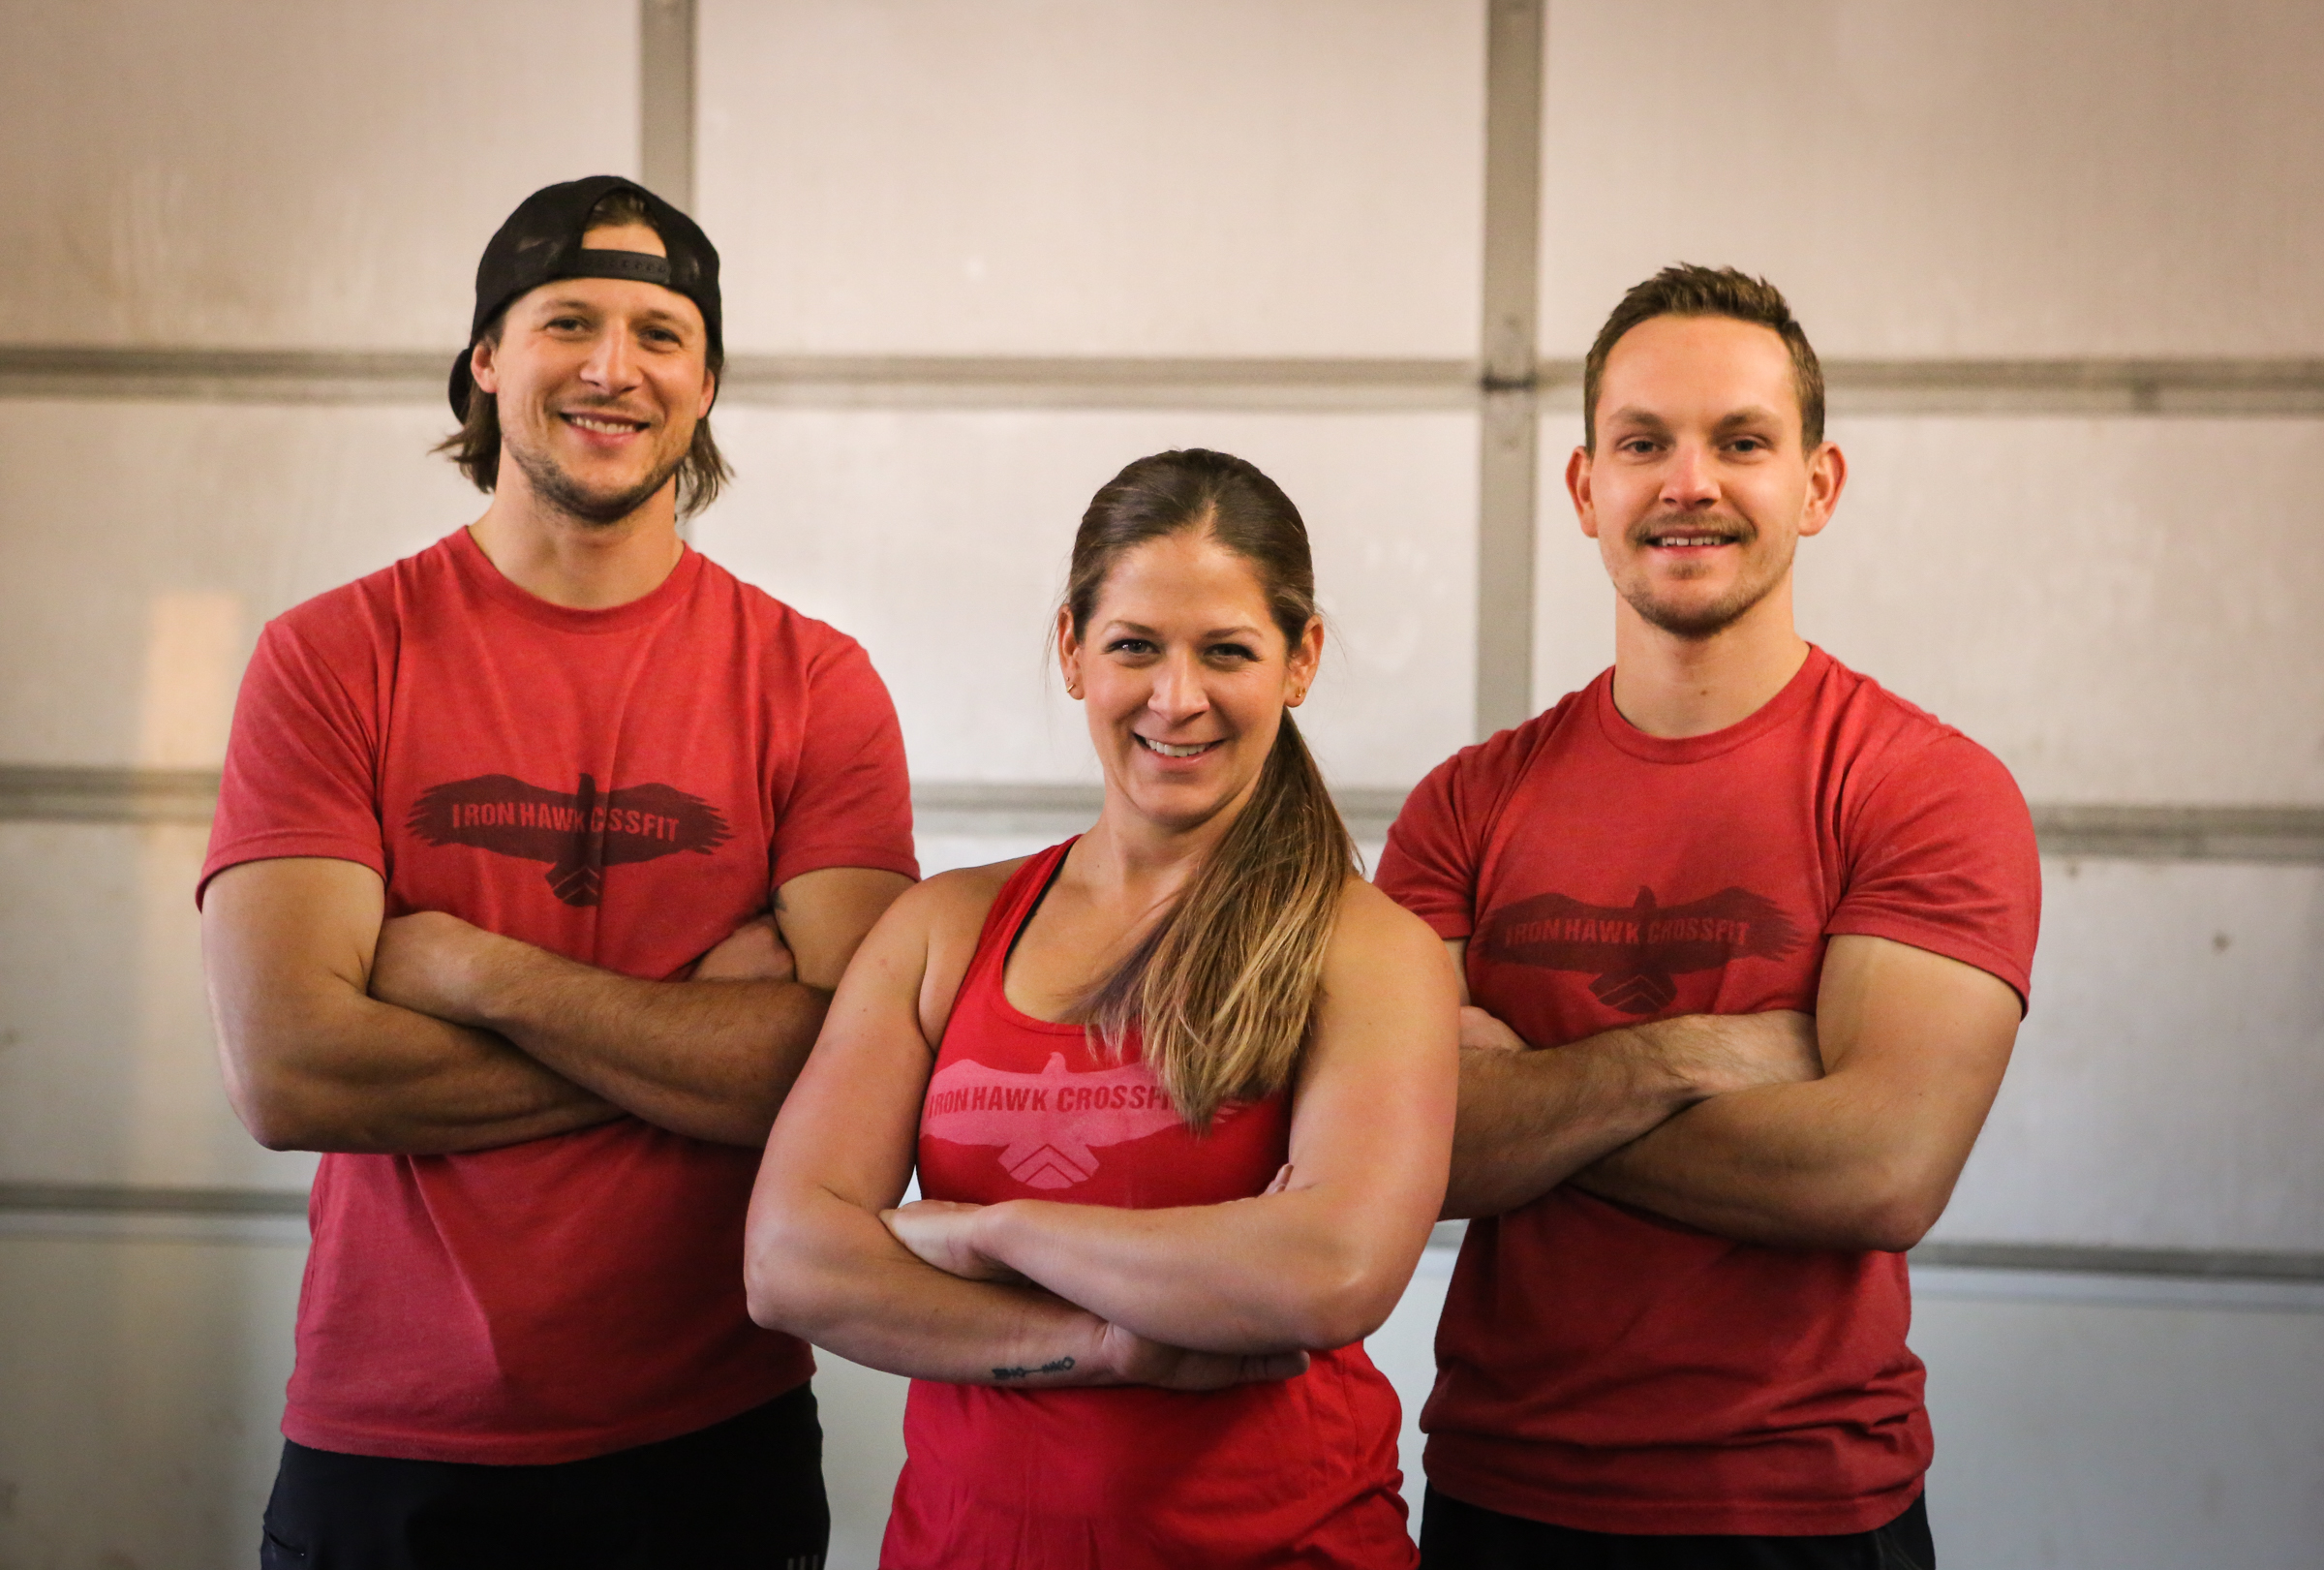 IronHawk CrossFit Family David Ambrose, Lisa Levdansky and Koltan Hansen